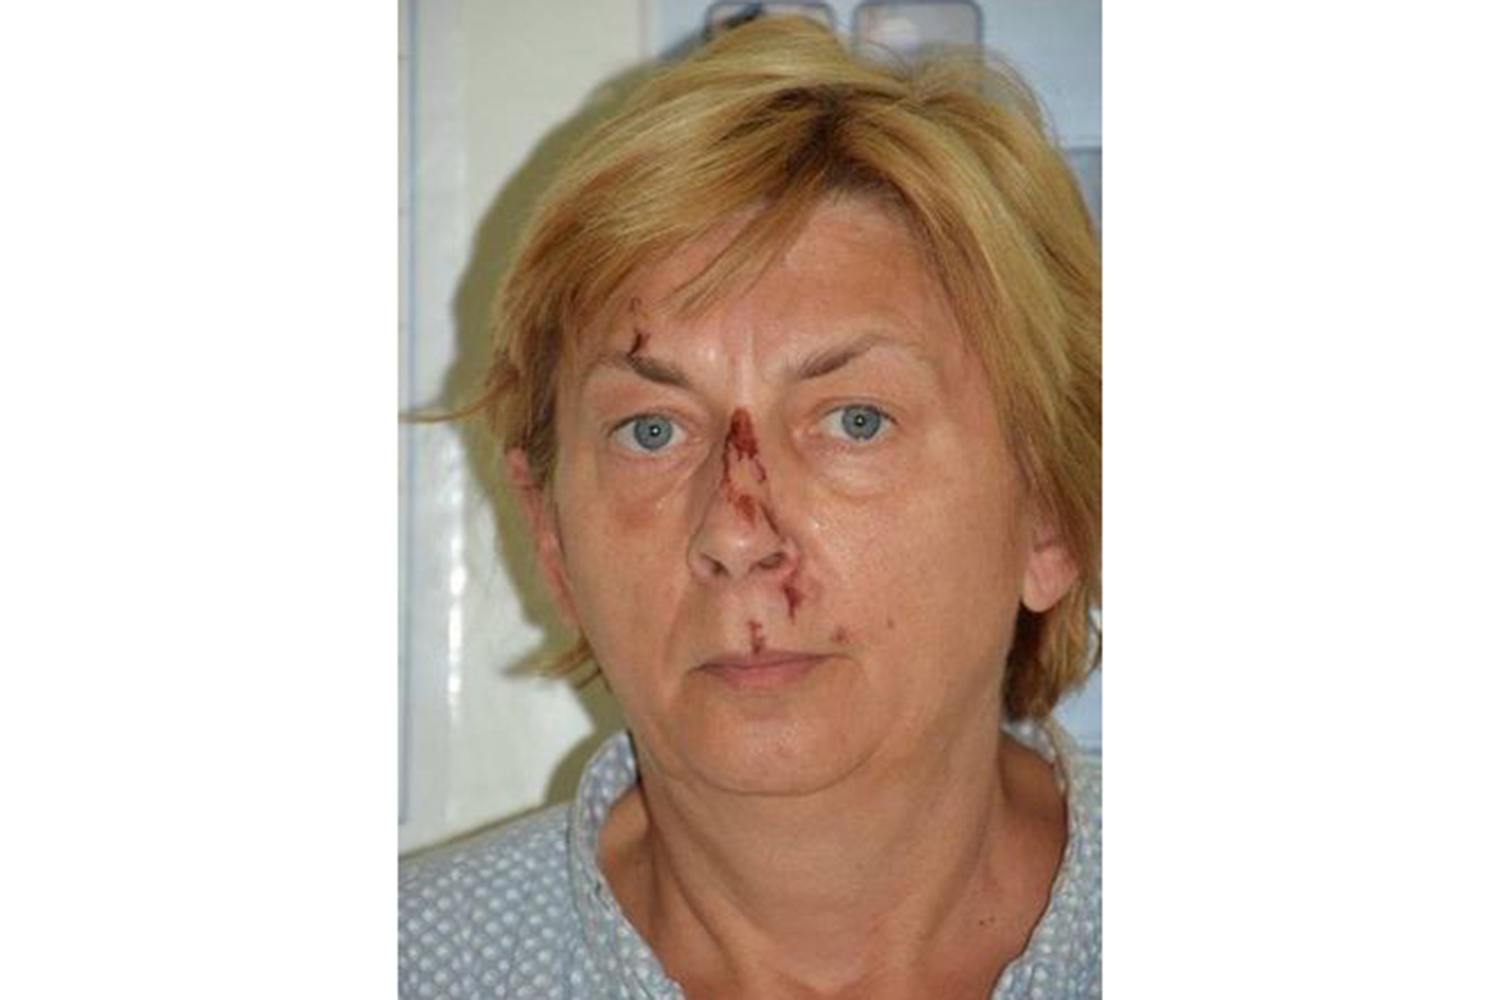 Mysterious English-speaking woman found in Croatia